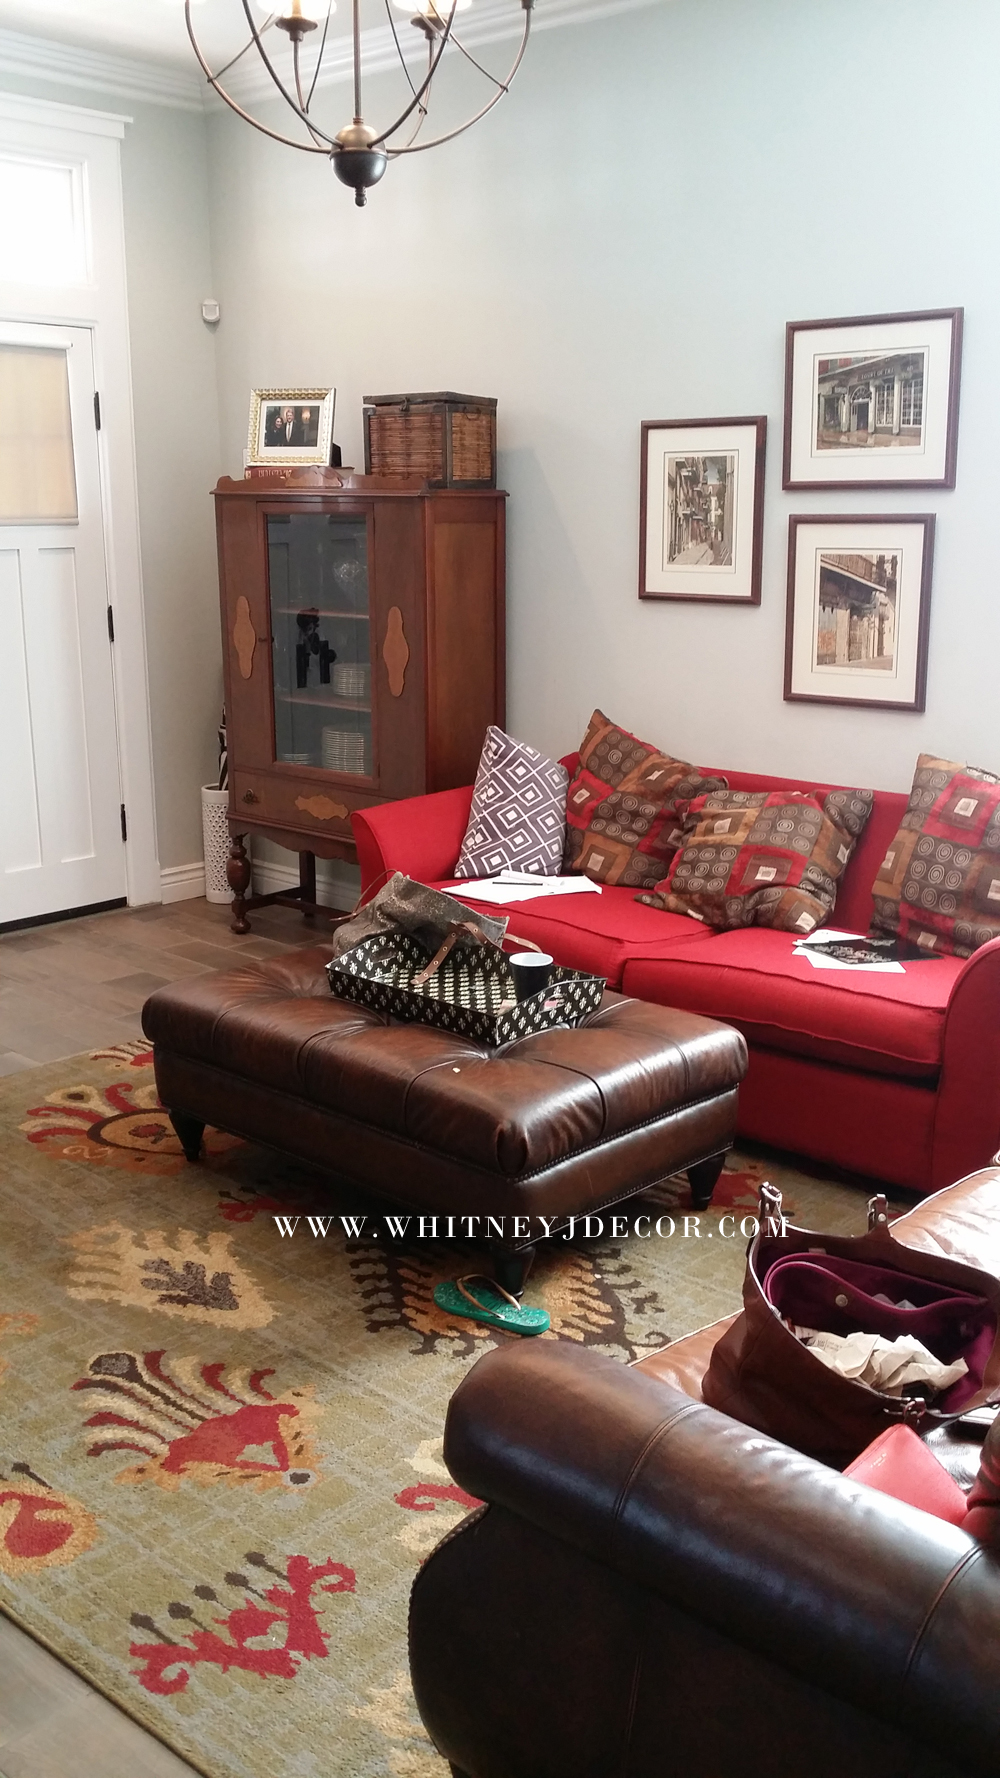 Best 2 Options For Living Room Design Project Whitney J Decor This Month